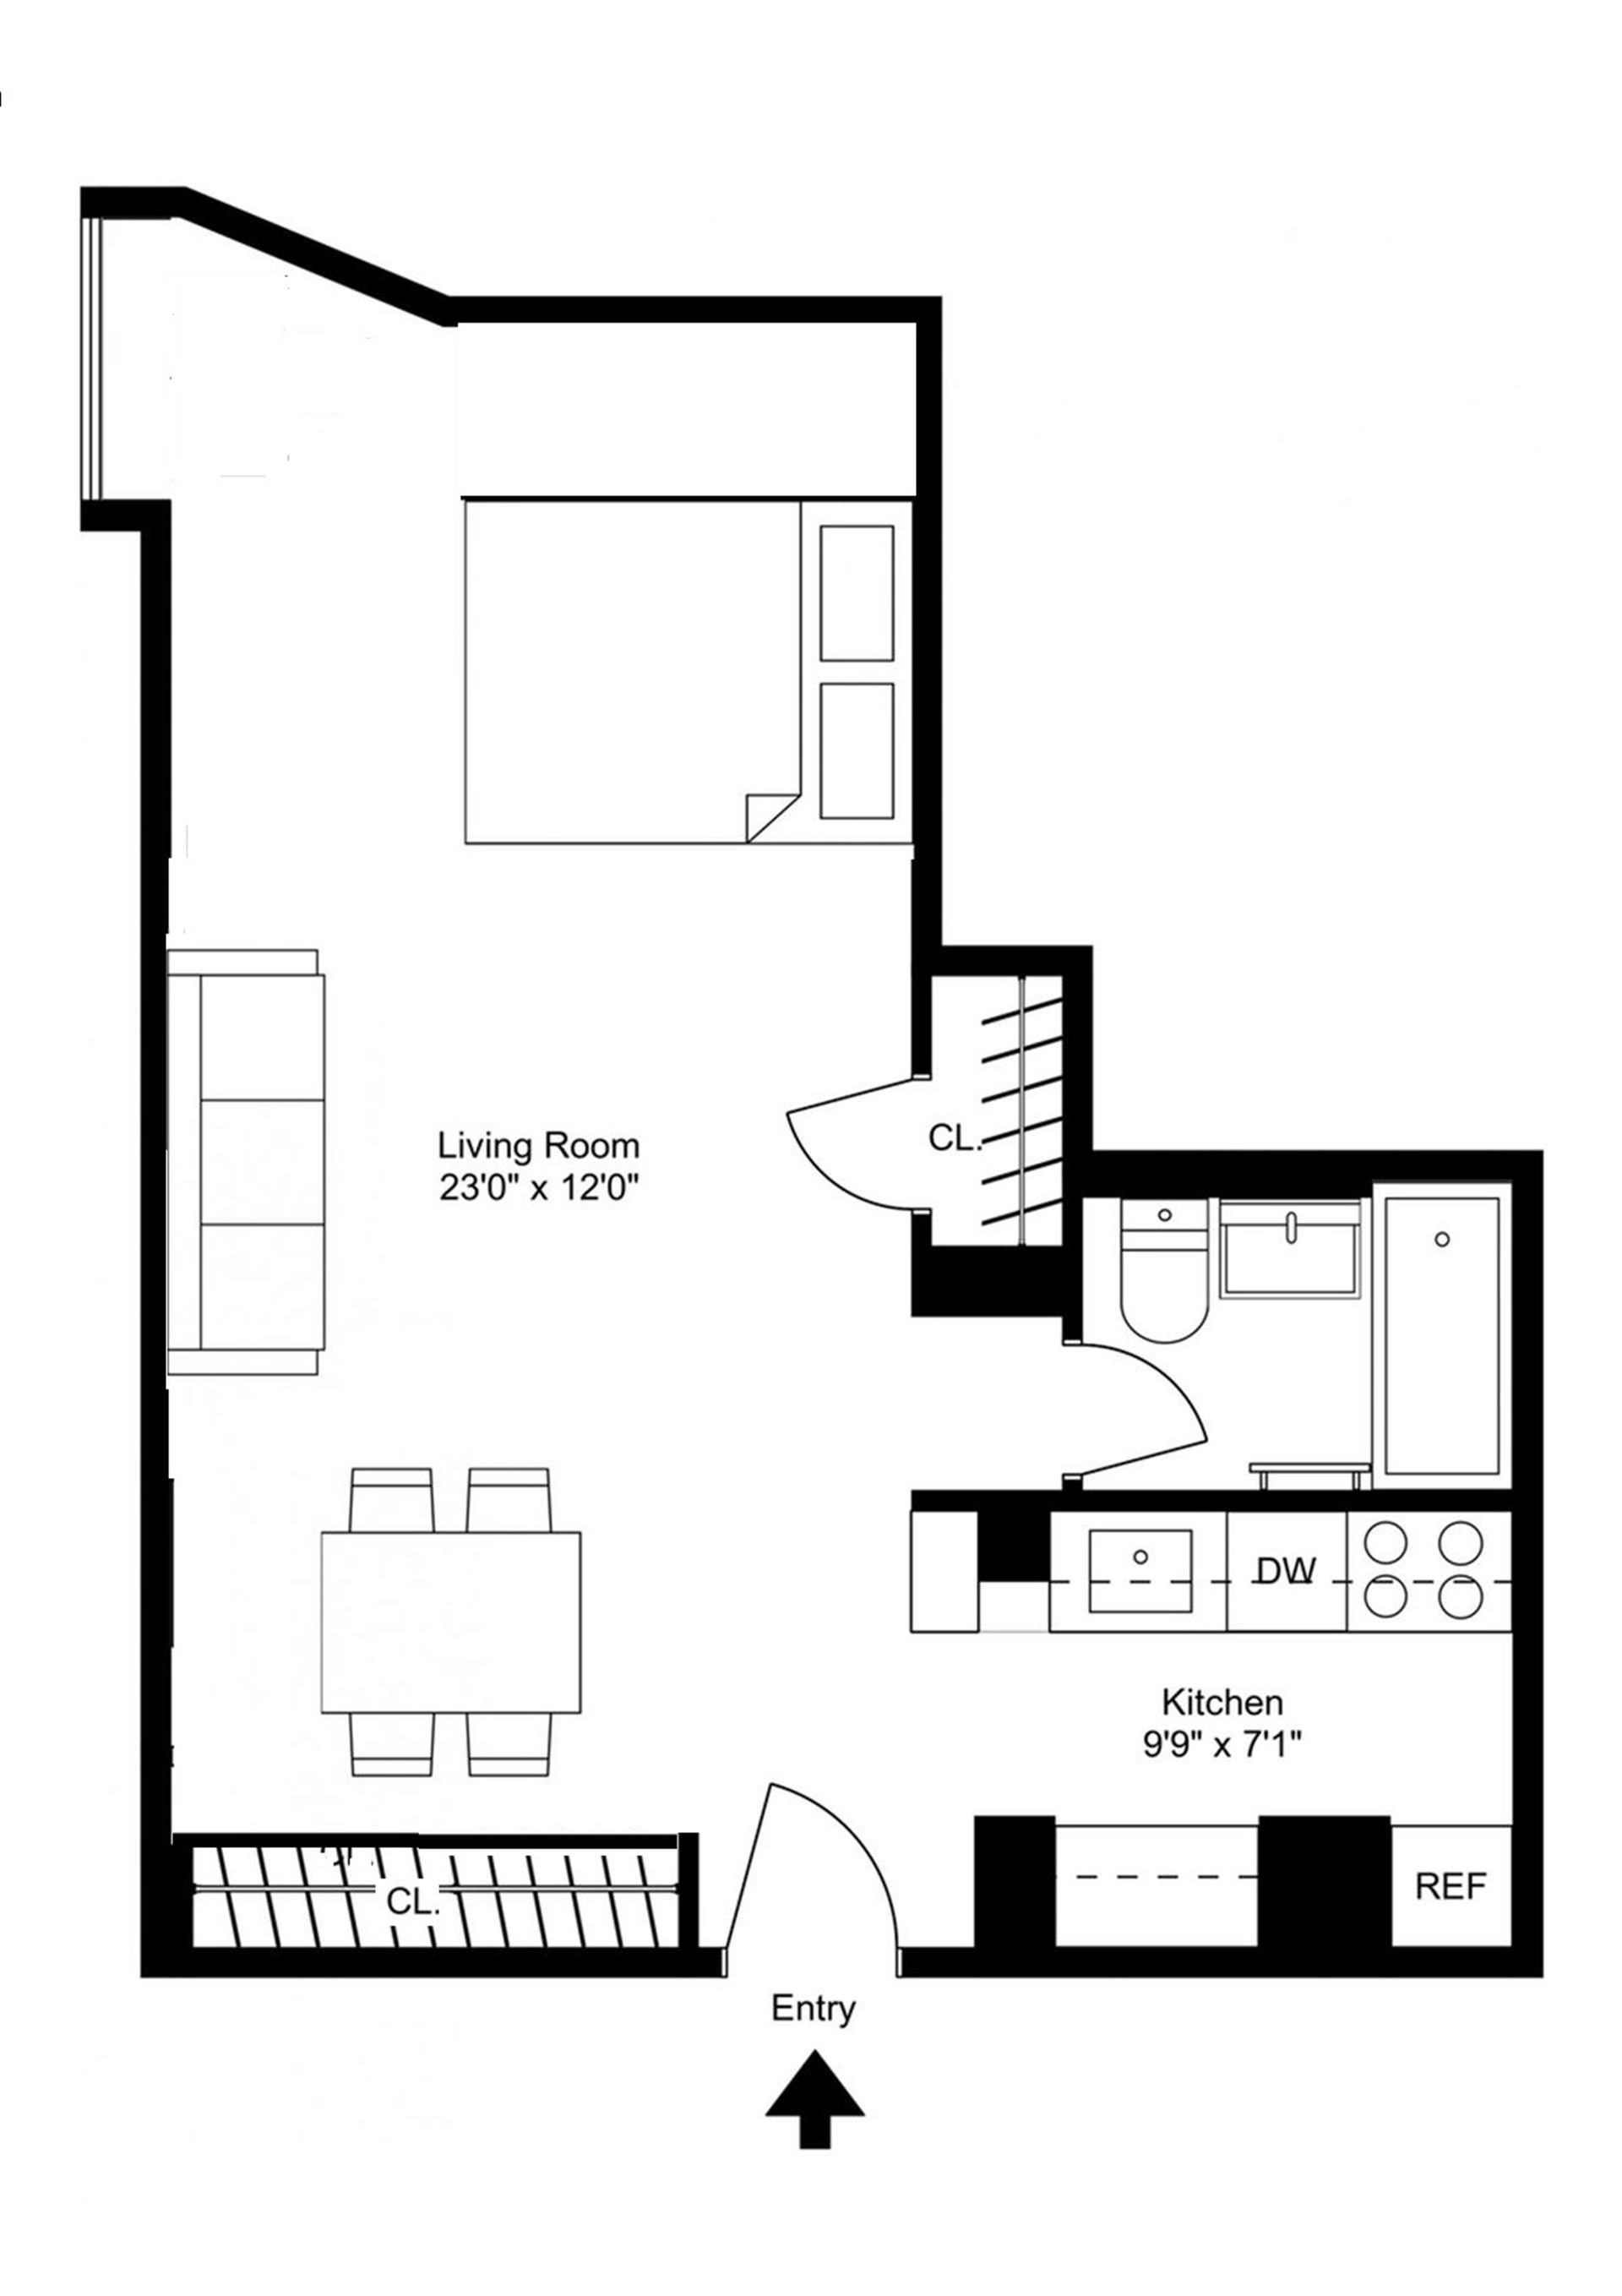 Floor plan of 720 Greenwich Street, 2M - West Village - Meatpacking District, New York